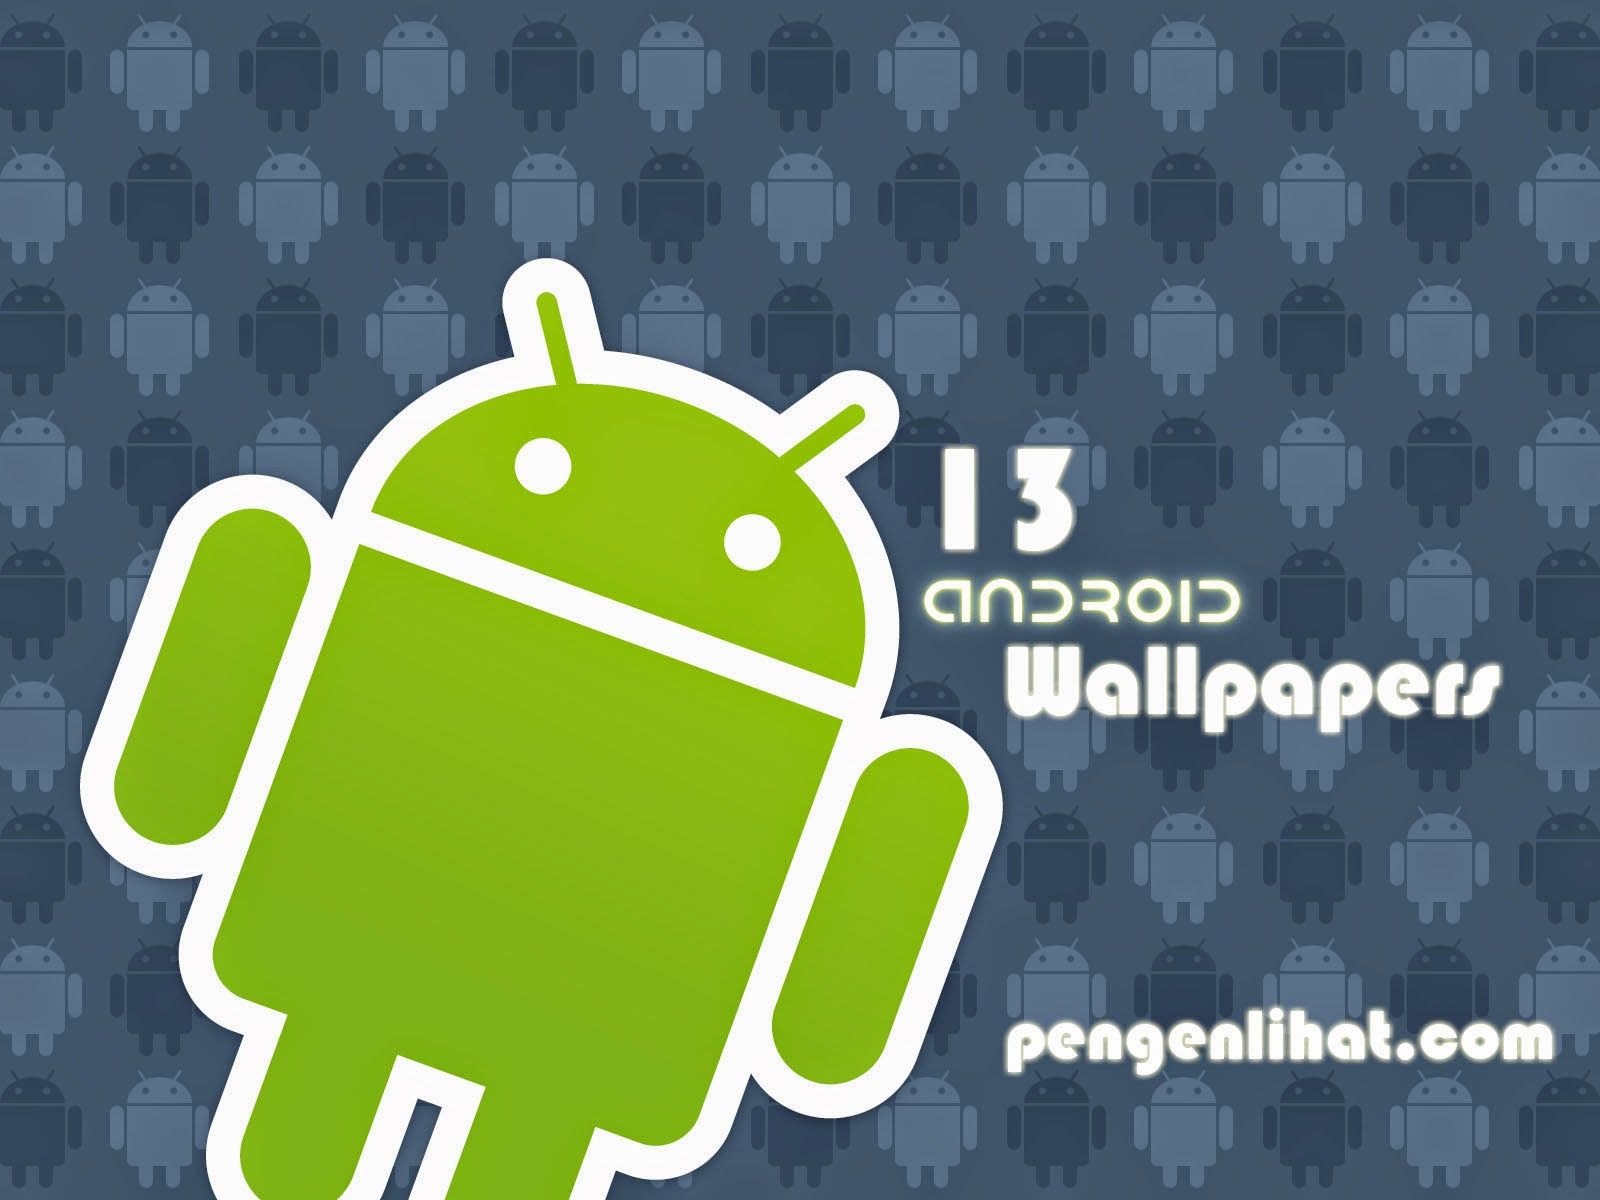 Download 700 Wallpaper Android Abstrak Hd HD Paling Keren